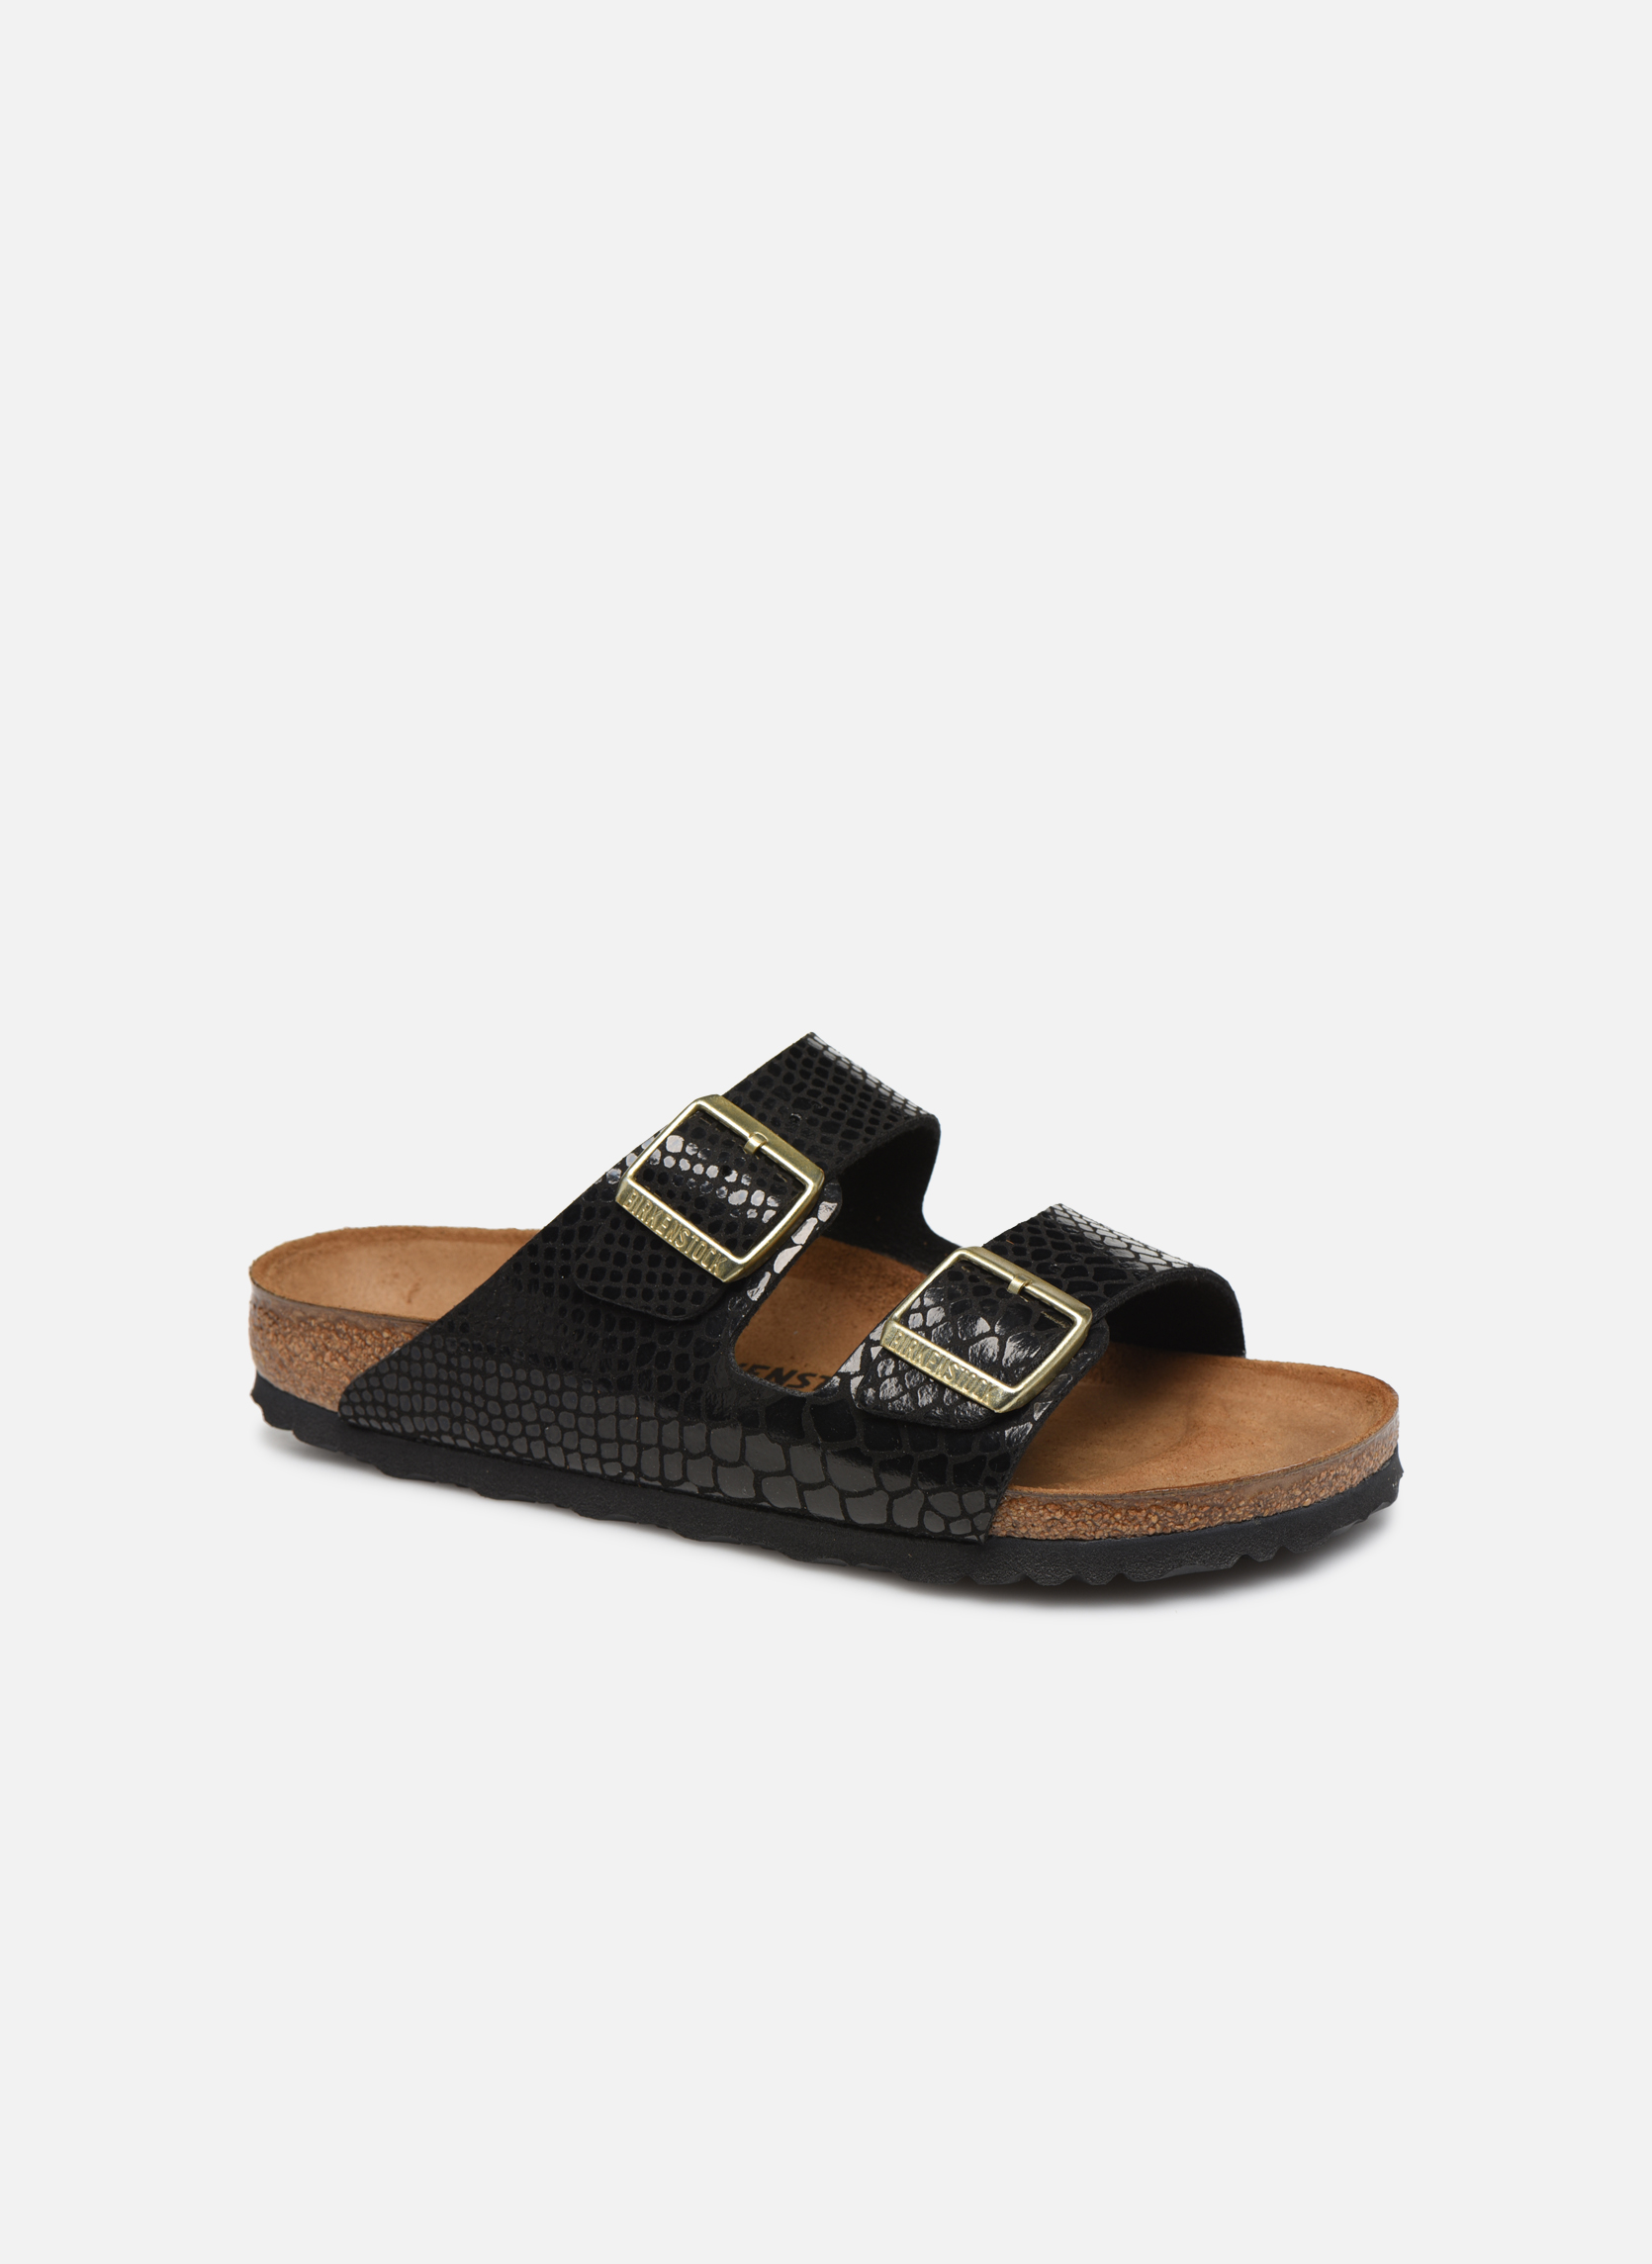 birkenstock arizona w sandalen f r damen schwarz bei. Black Bedroom Furniture Sets. Home Design Ideas